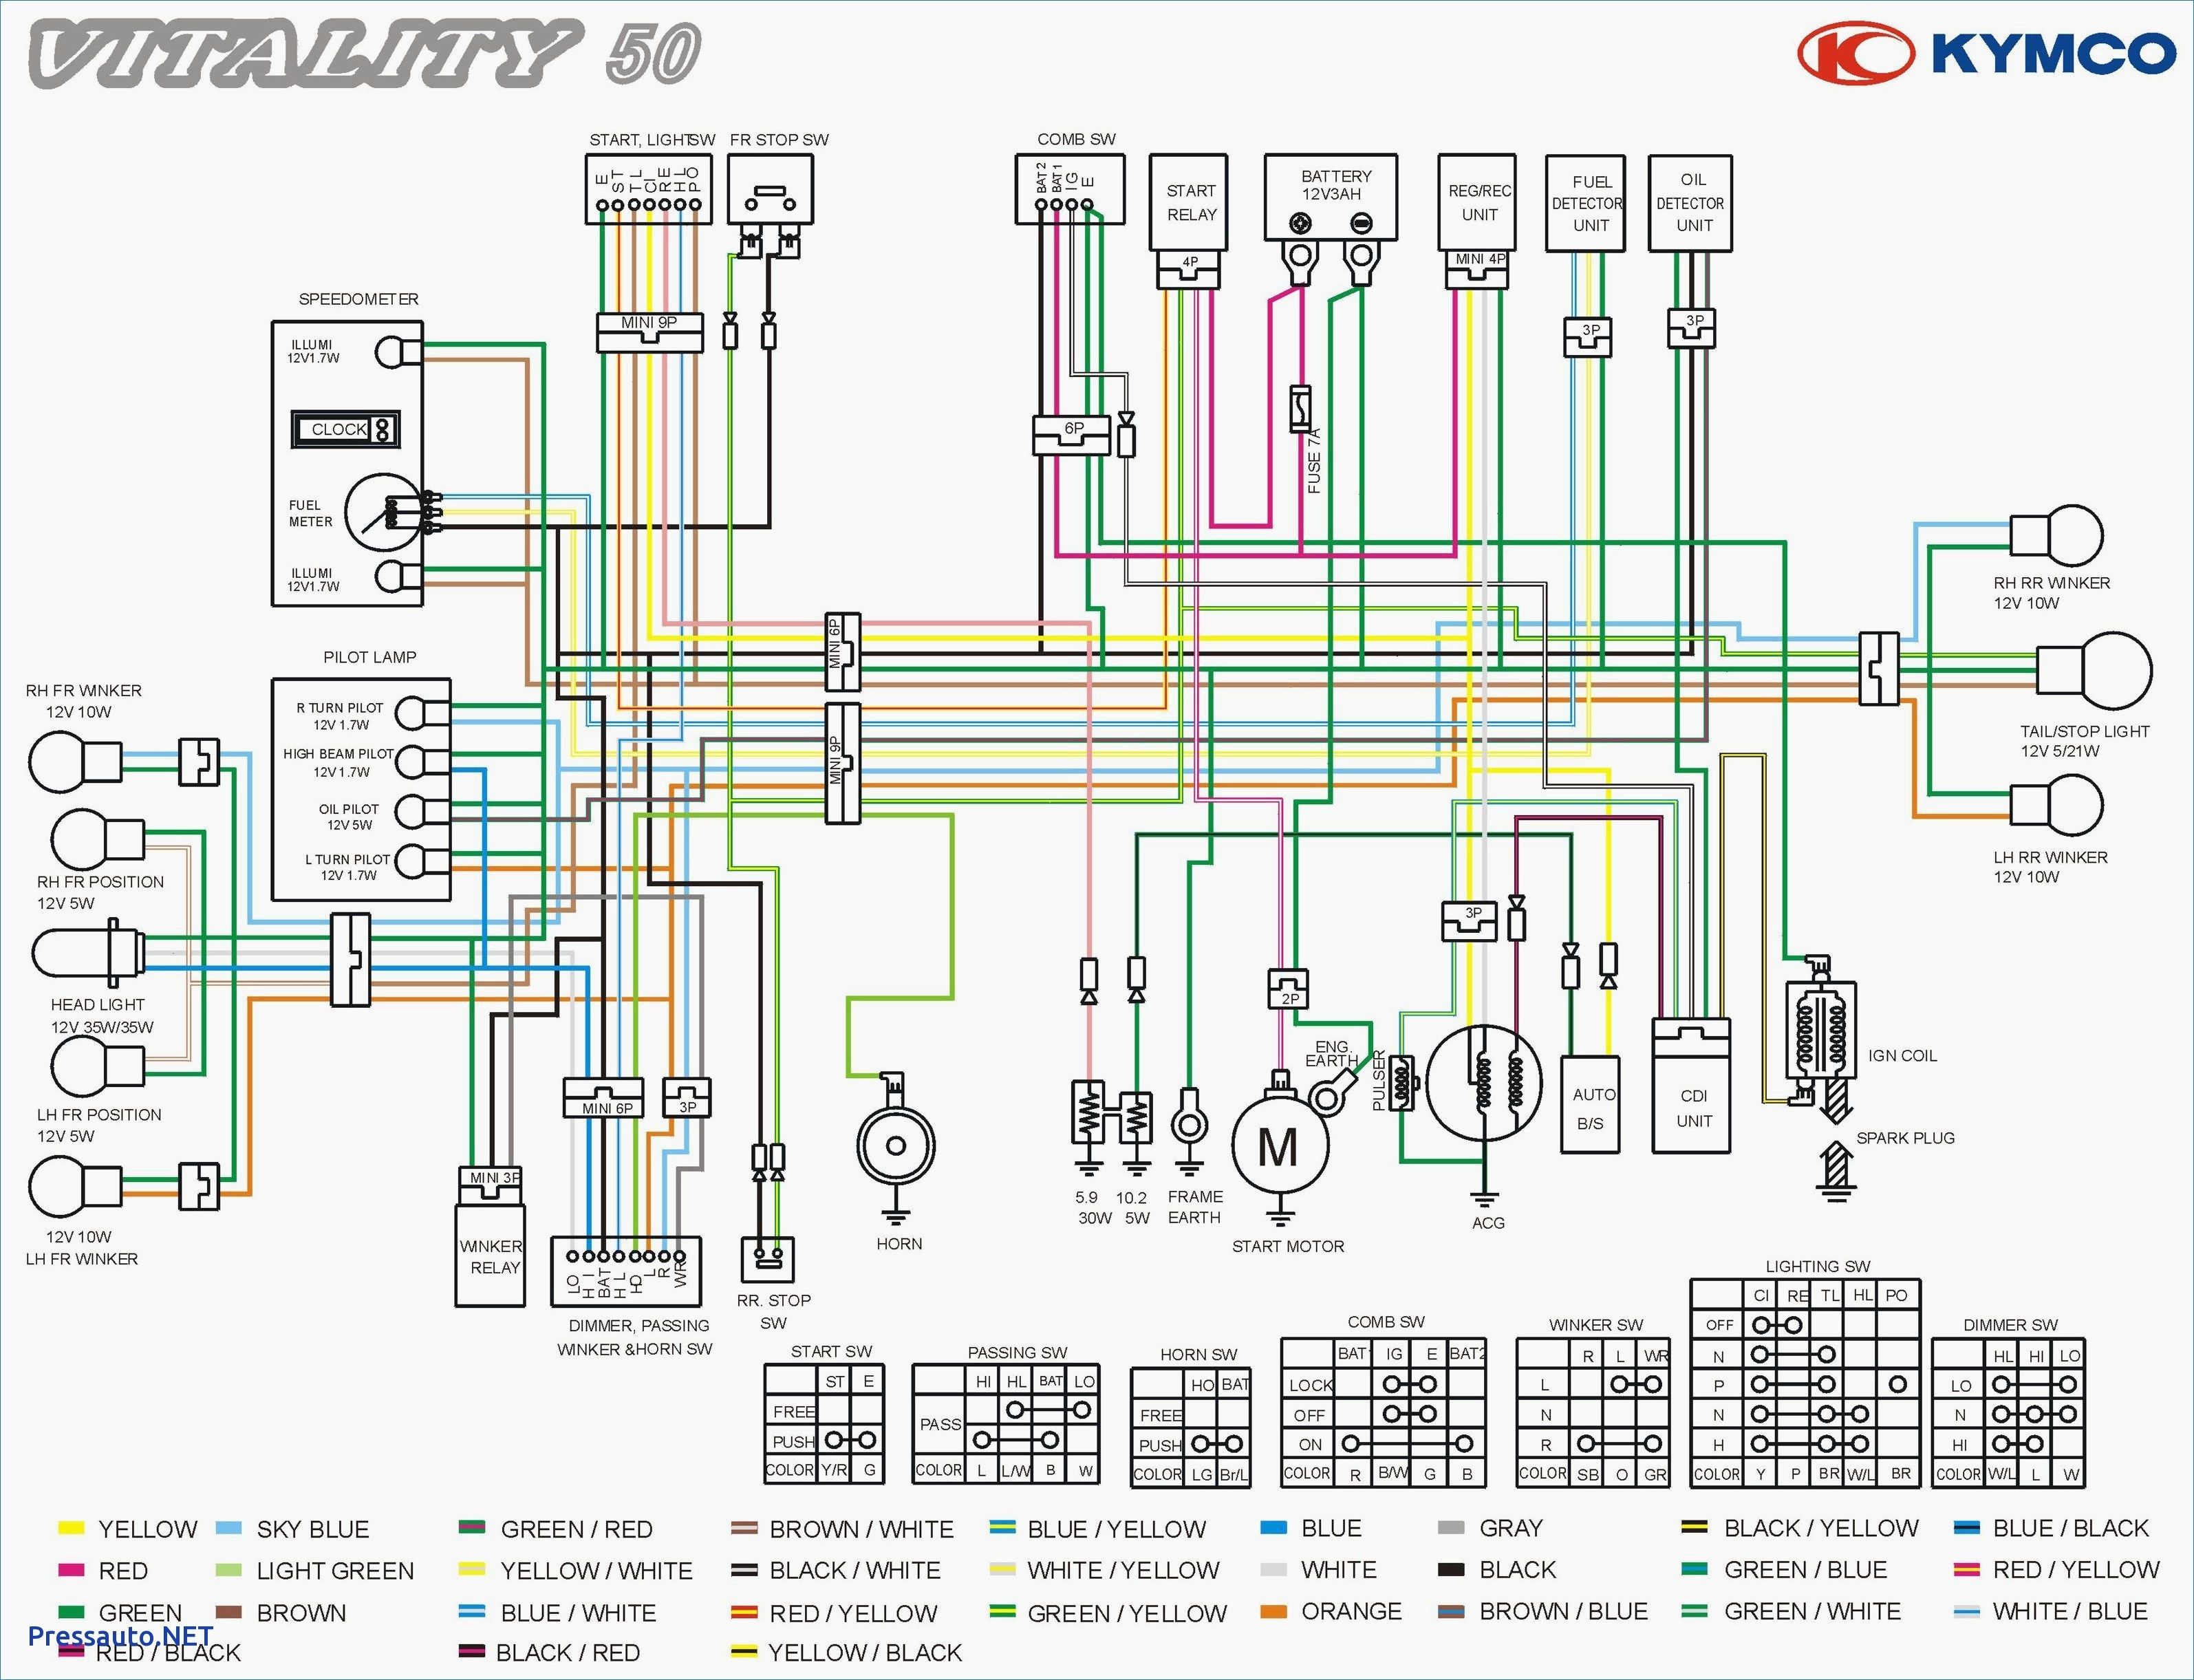 Wiring Diagram For Kymco Agility 50 Download Free And Https Pin It Osvyqf8 Diagram Free Download Download